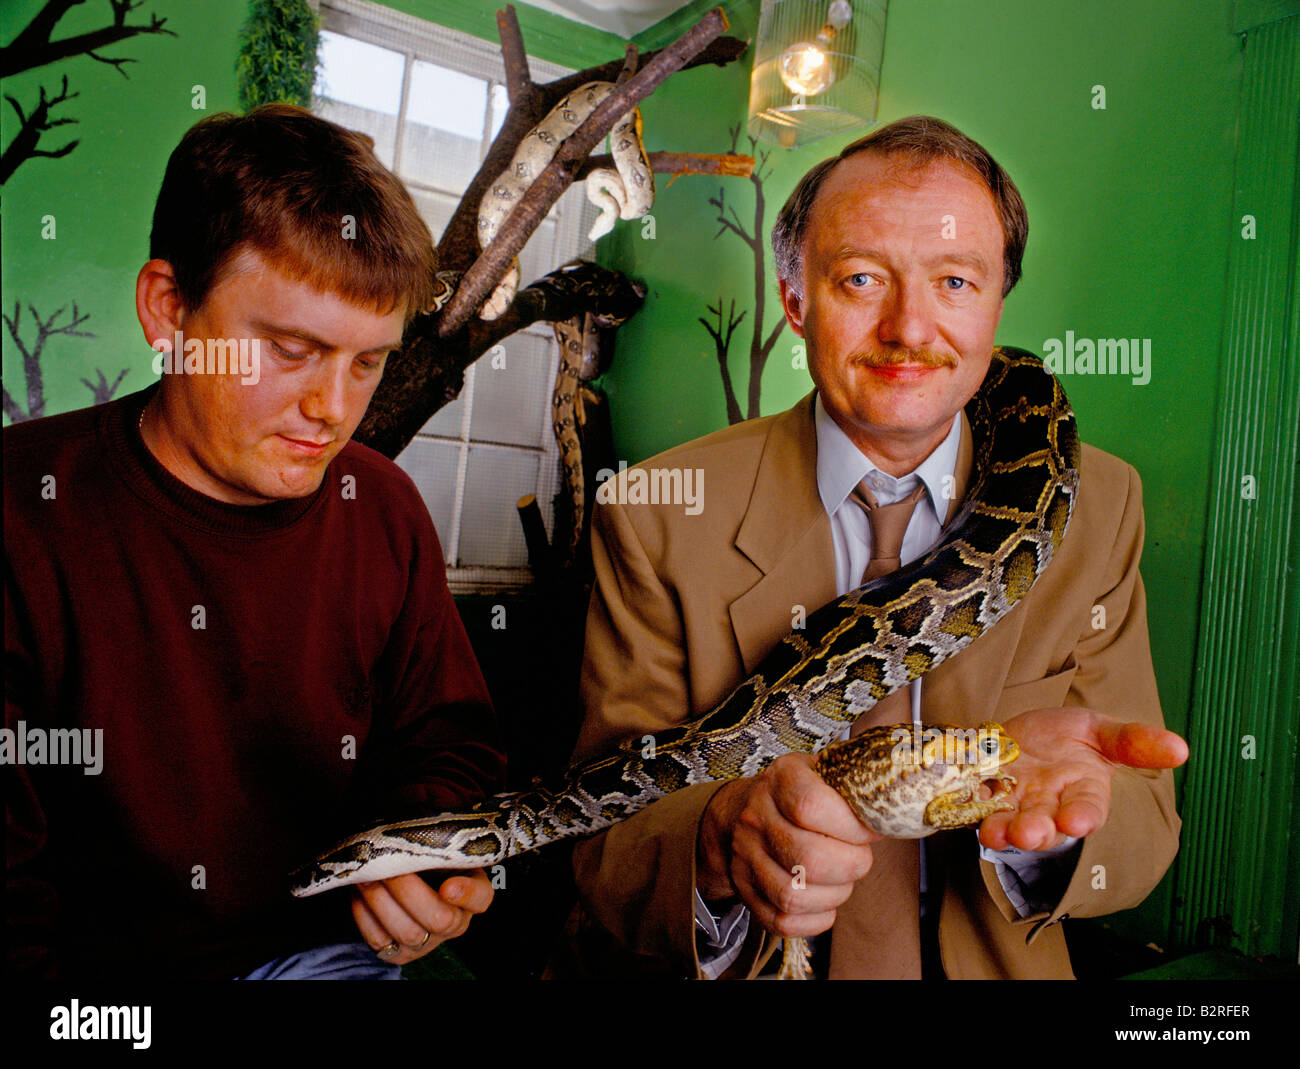 KEN LIVINGSTONE MP HIS HOBBY IS COLLECTING REPTILES AMPHIBIANS 1992 - Stock Image